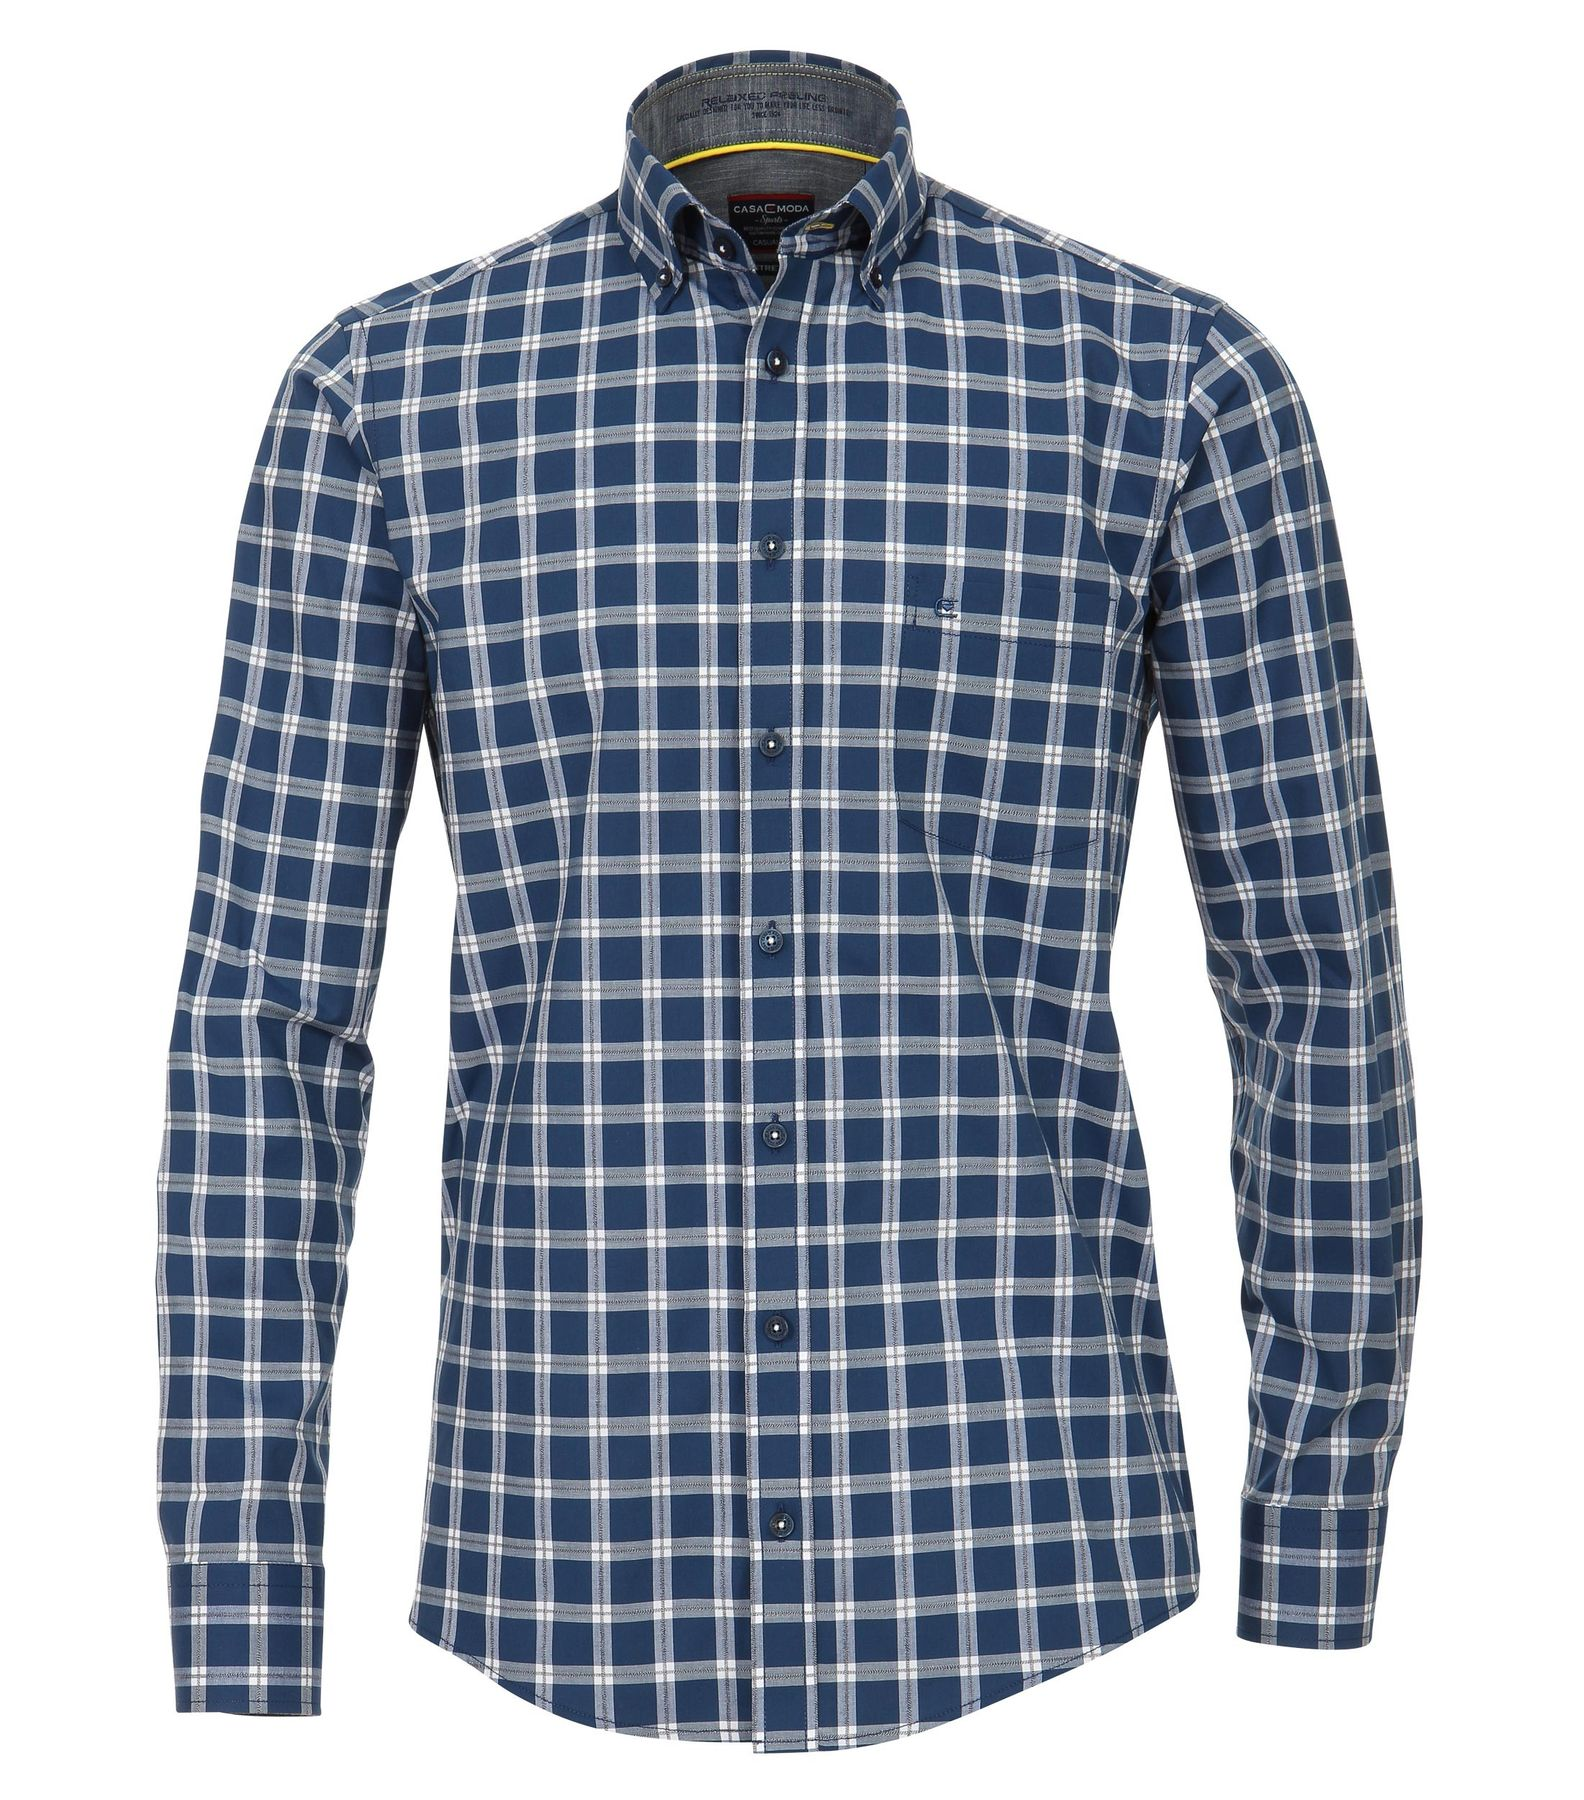 Casa Moda - Casual Fit - Stretch Herren Hemd kariert mit Button Down-Kragen in blau (482897700)